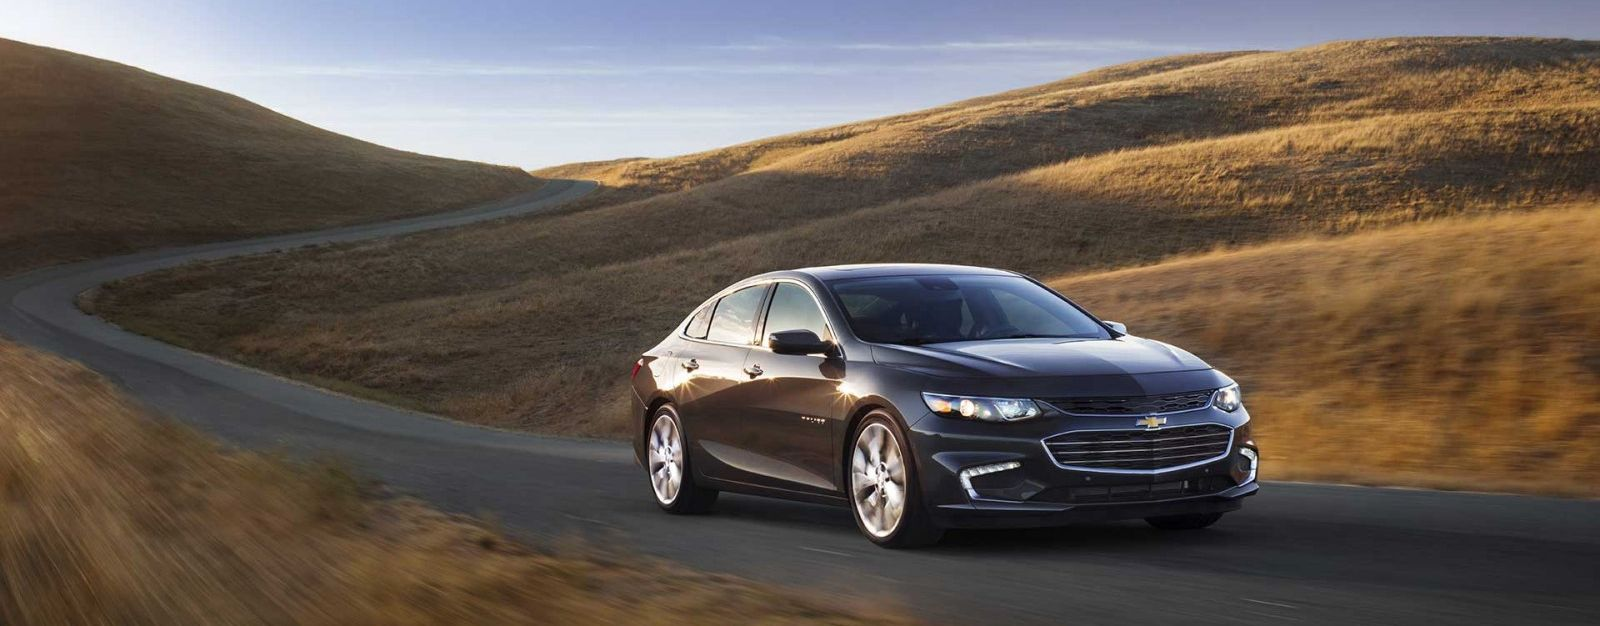 Livin Calais 2017 Chevrolet Malibu Technology Features Near Washington Dc